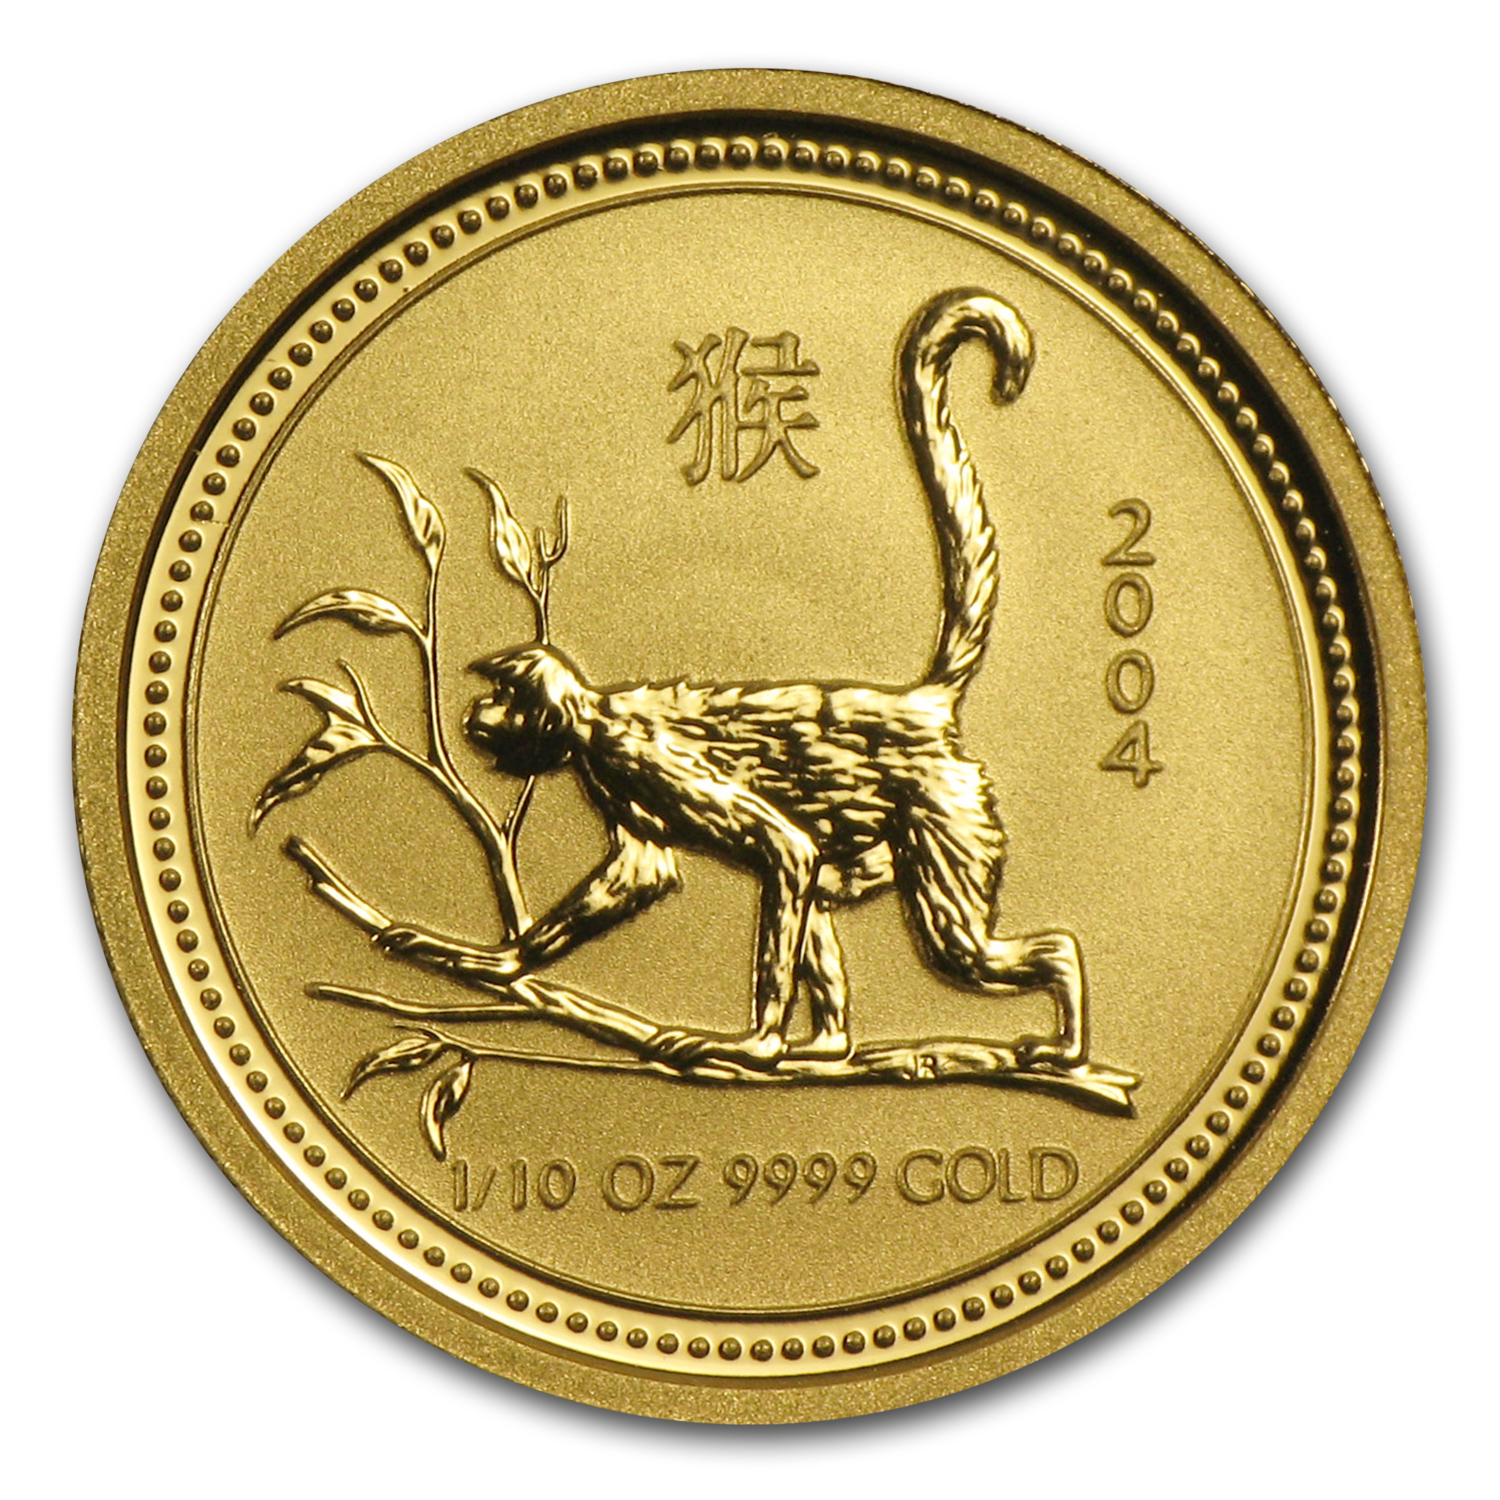 2004 1/10 oz Gold Year of the Monkey Lunar Coin (Series I)